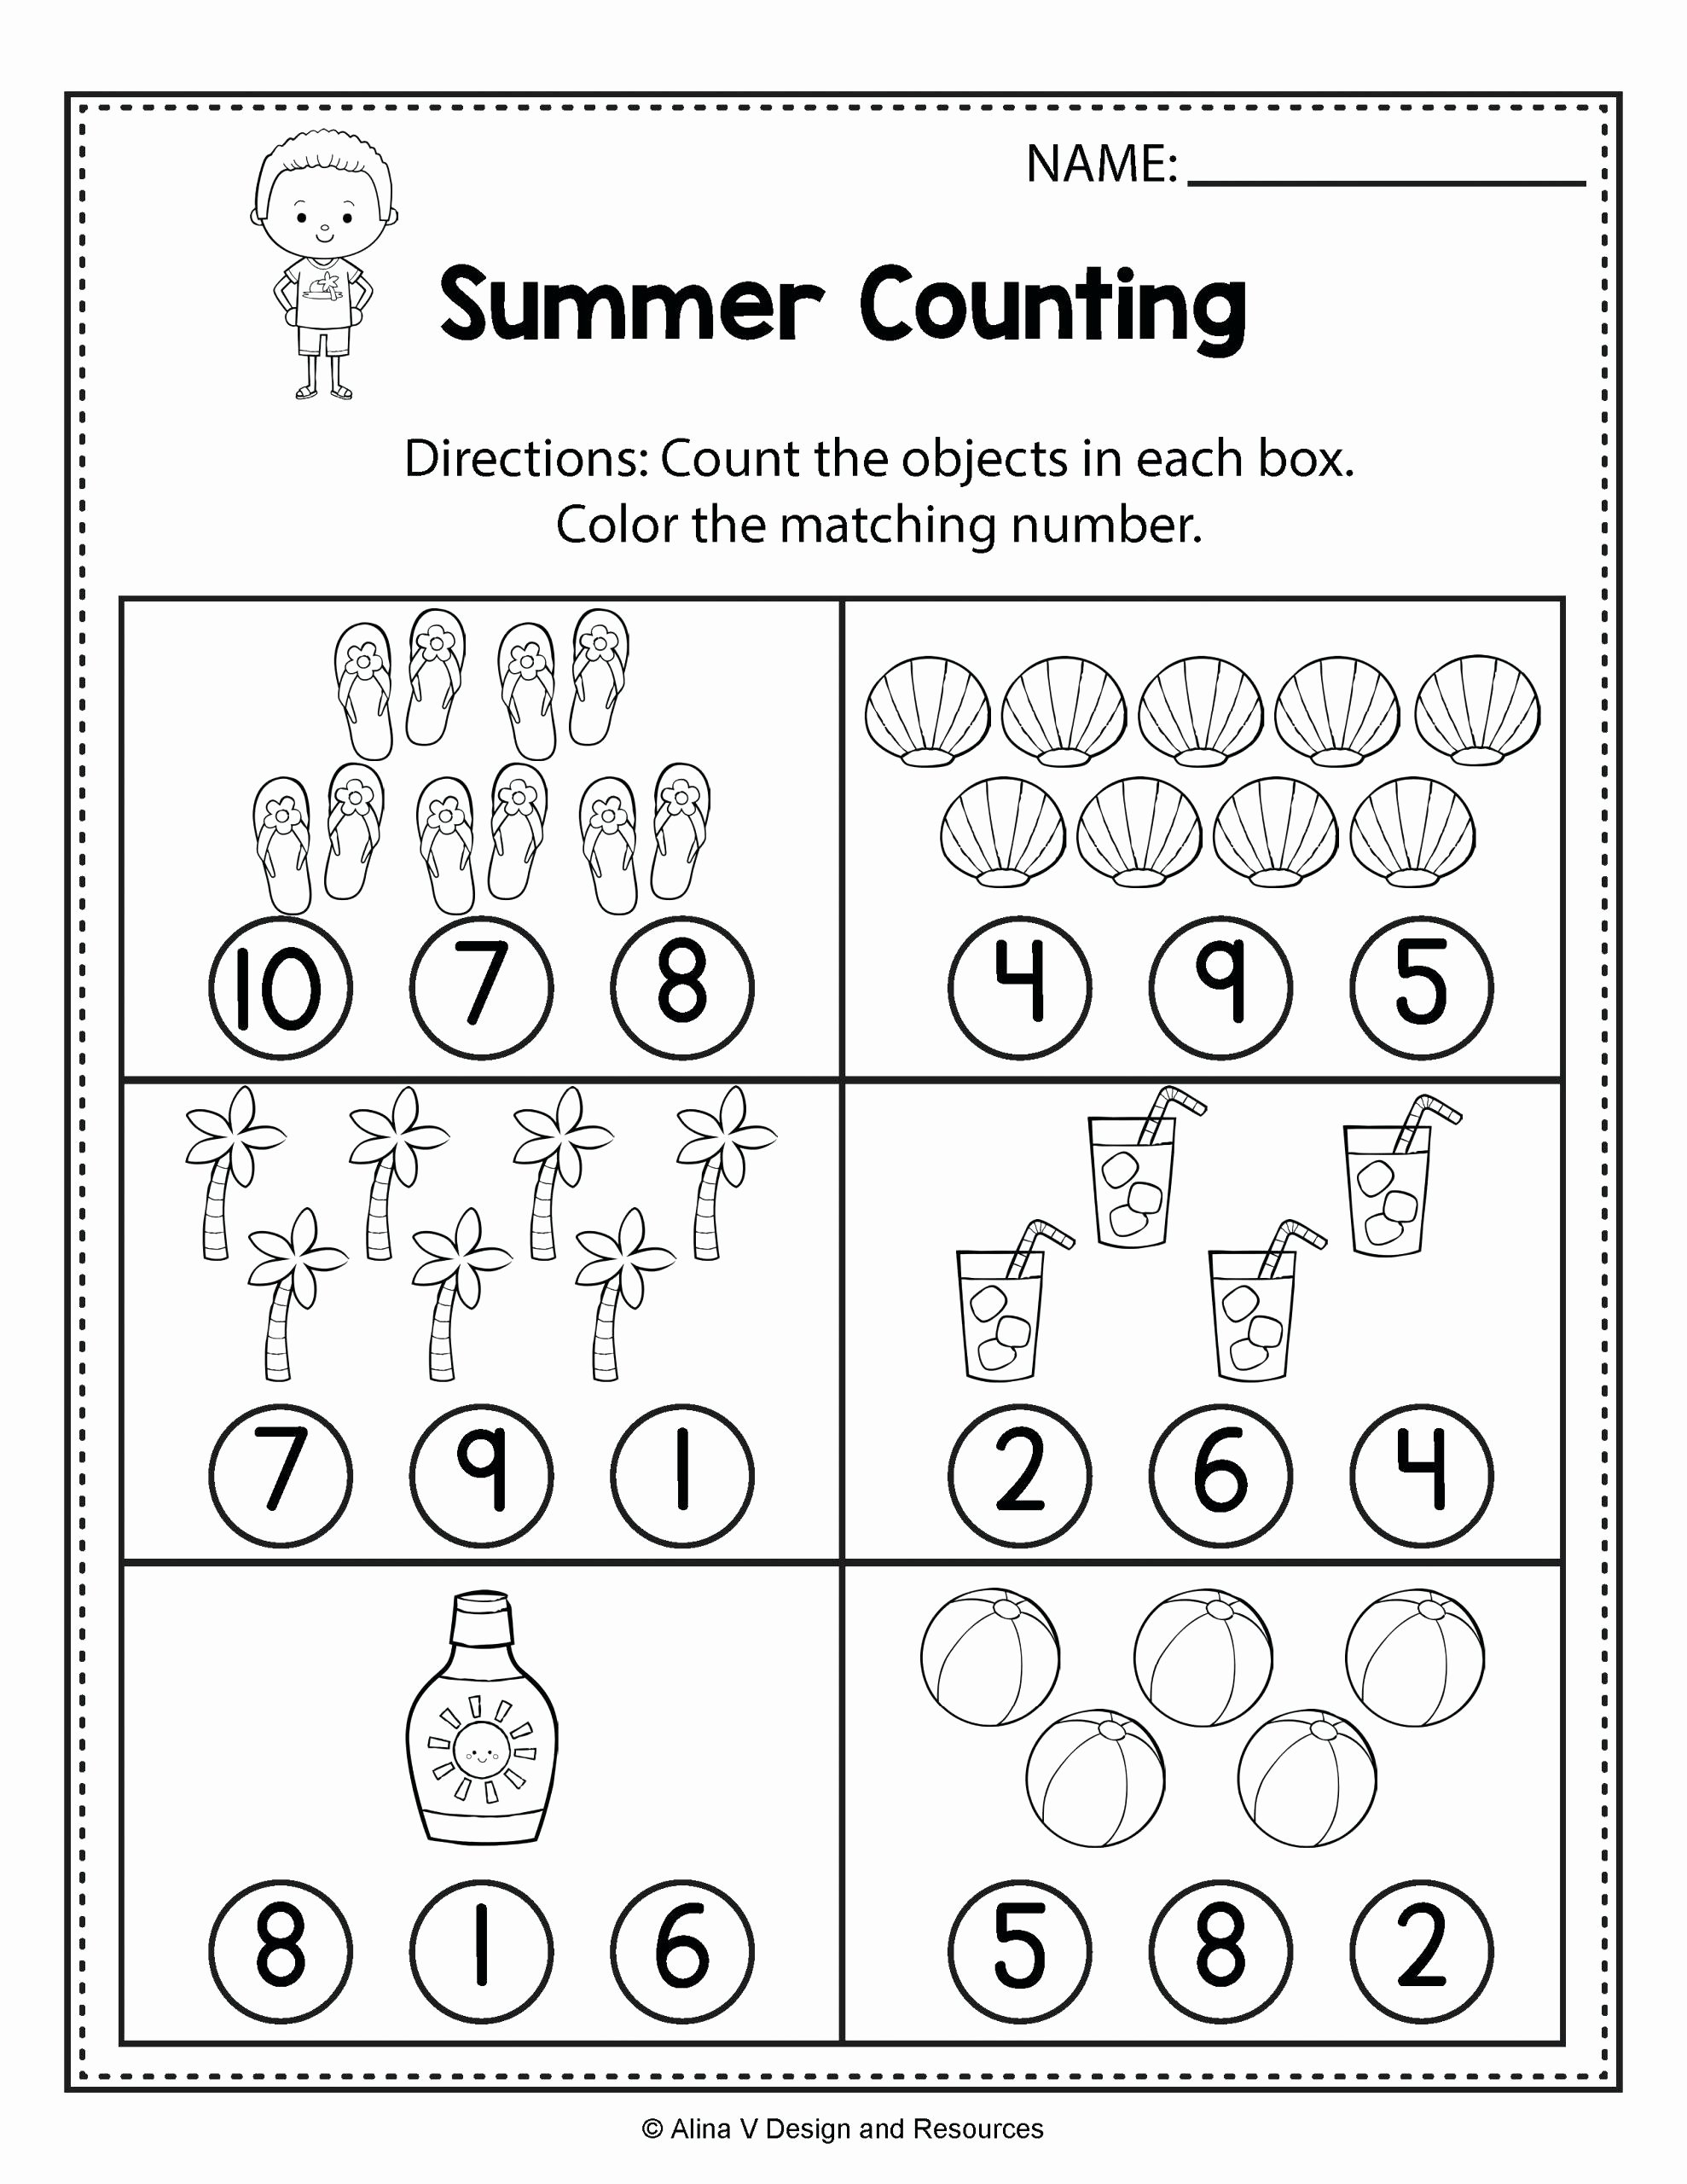 Logical Reasoning Worksheets for Preschoolers New Basic Math Classes Coloring Books for Grown Ups Chance the